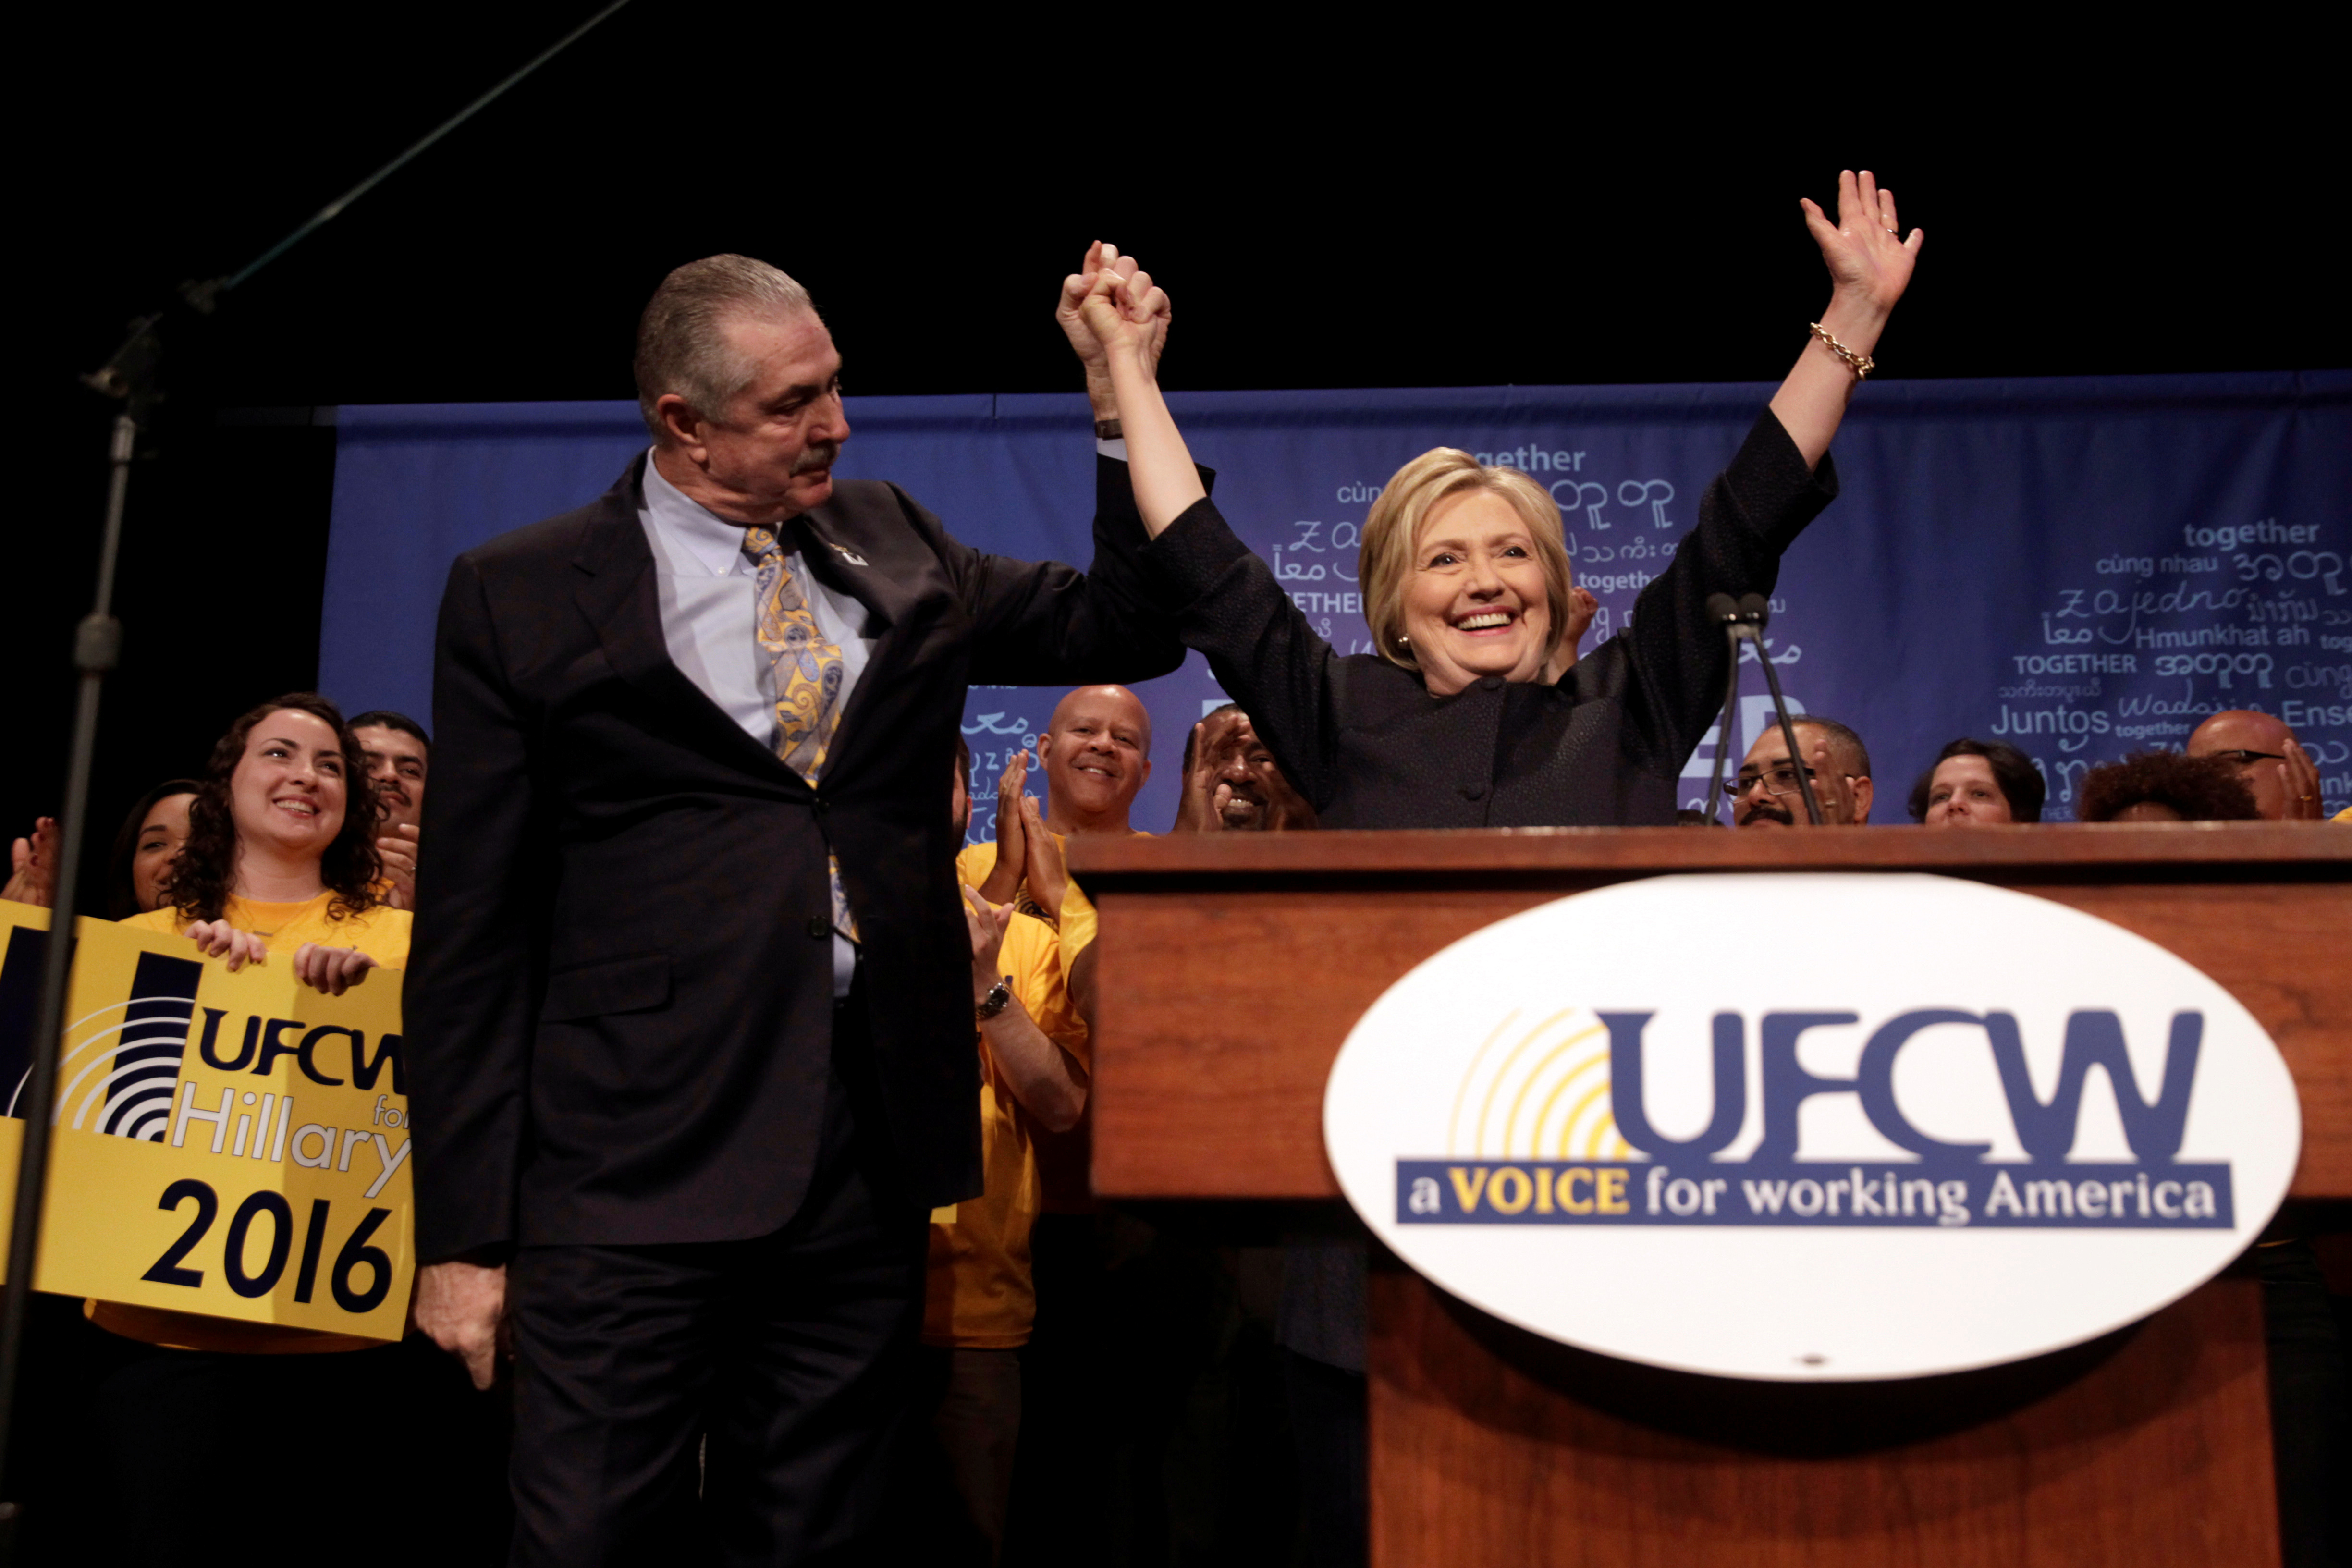 U.S. Democratic presidential candidate Hillary Clinton (R) poses with United Food & Commercial Workers International President Marc Perrone after speaking to the attendees of the UFCW convention in Las Vegas, Nevada, U.S. May 26, 2016. REUTERS/Steve Marcus